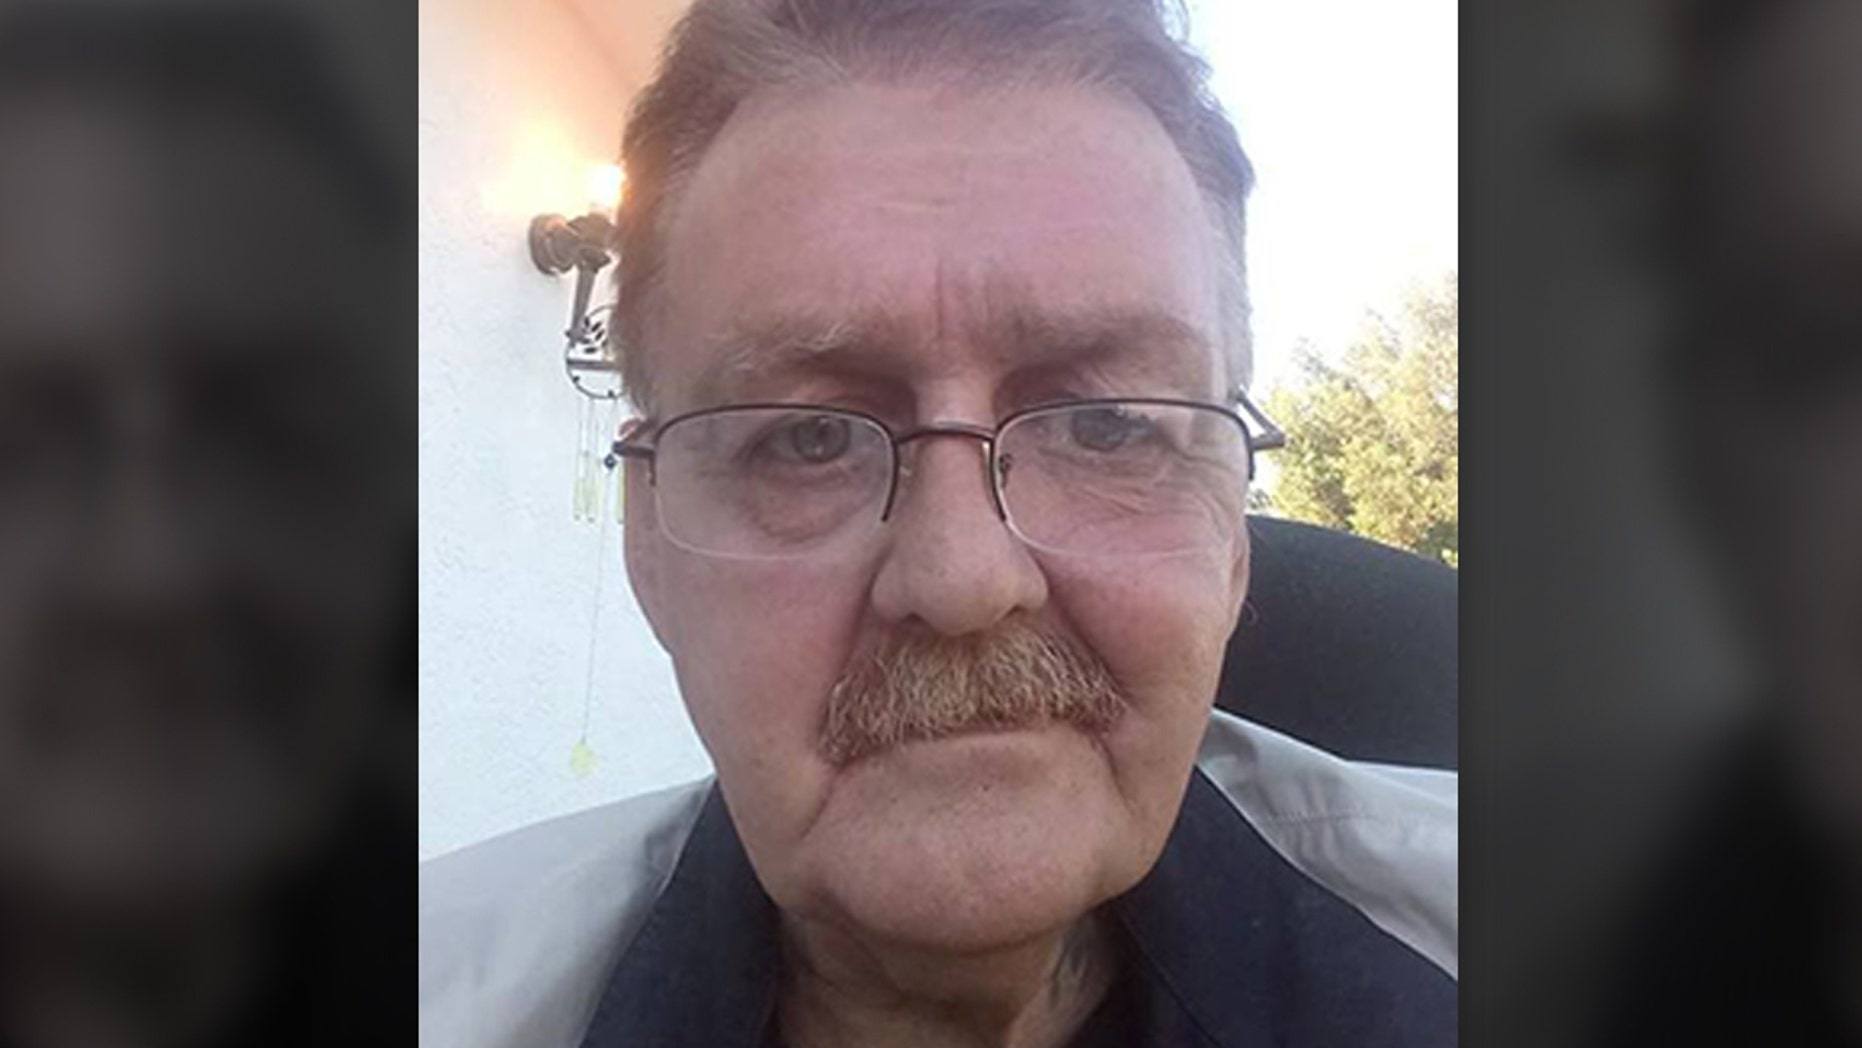 Larry Ray Bon, 59, was charged with forcibly assaulting and inflicting bodily injury on a federal employee who was engaged in officials duties after officials say the opened fire in the emergency room of the VA Medical Center in Riviera Beach at approximately 6:30 p.m. and injured two people, according to an affidavit from the FBI.